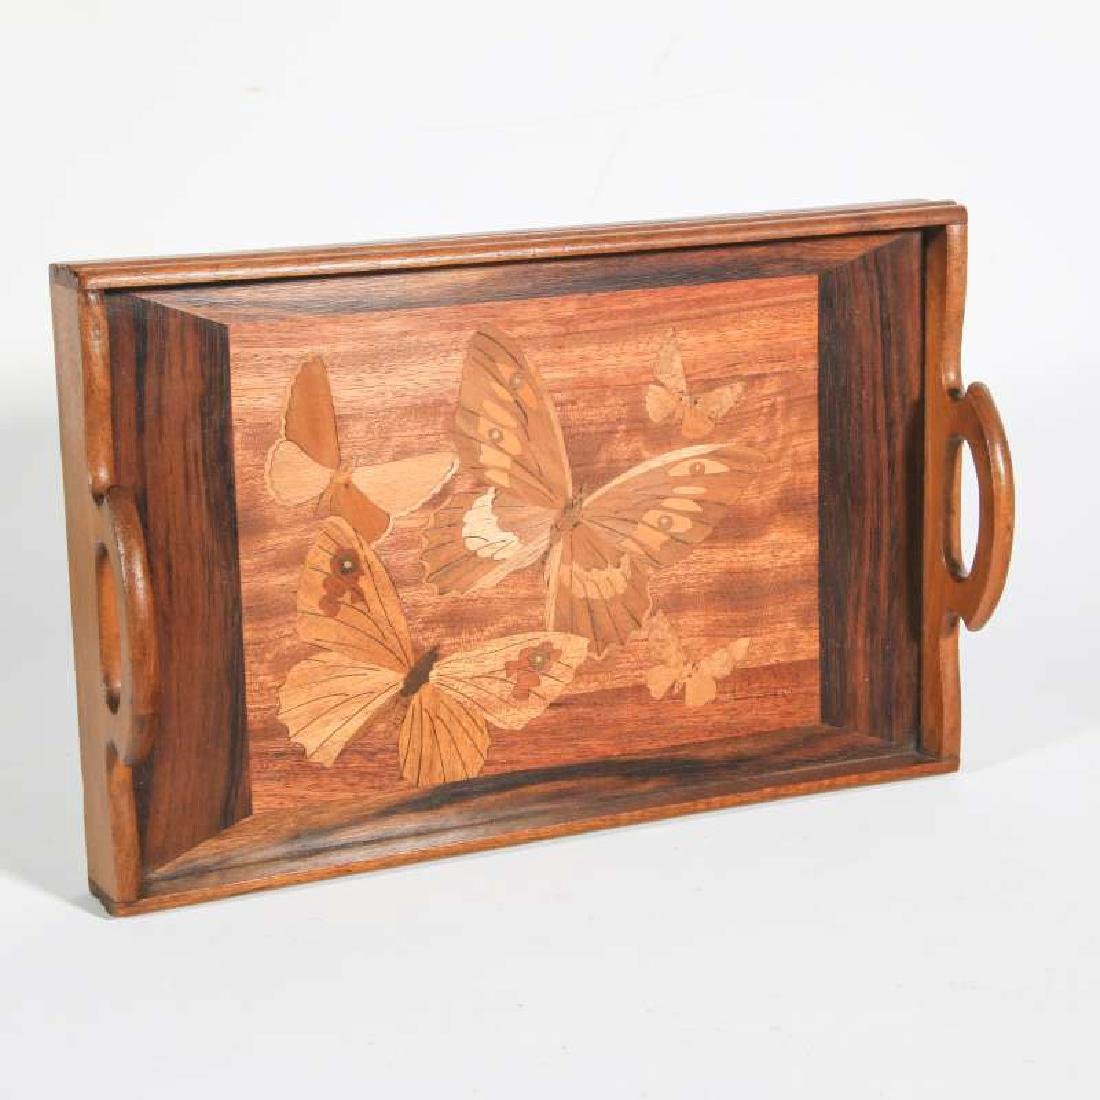 AN EARLY 20TH C. MARQUETRY TRAY WITH BUTTERFLIES